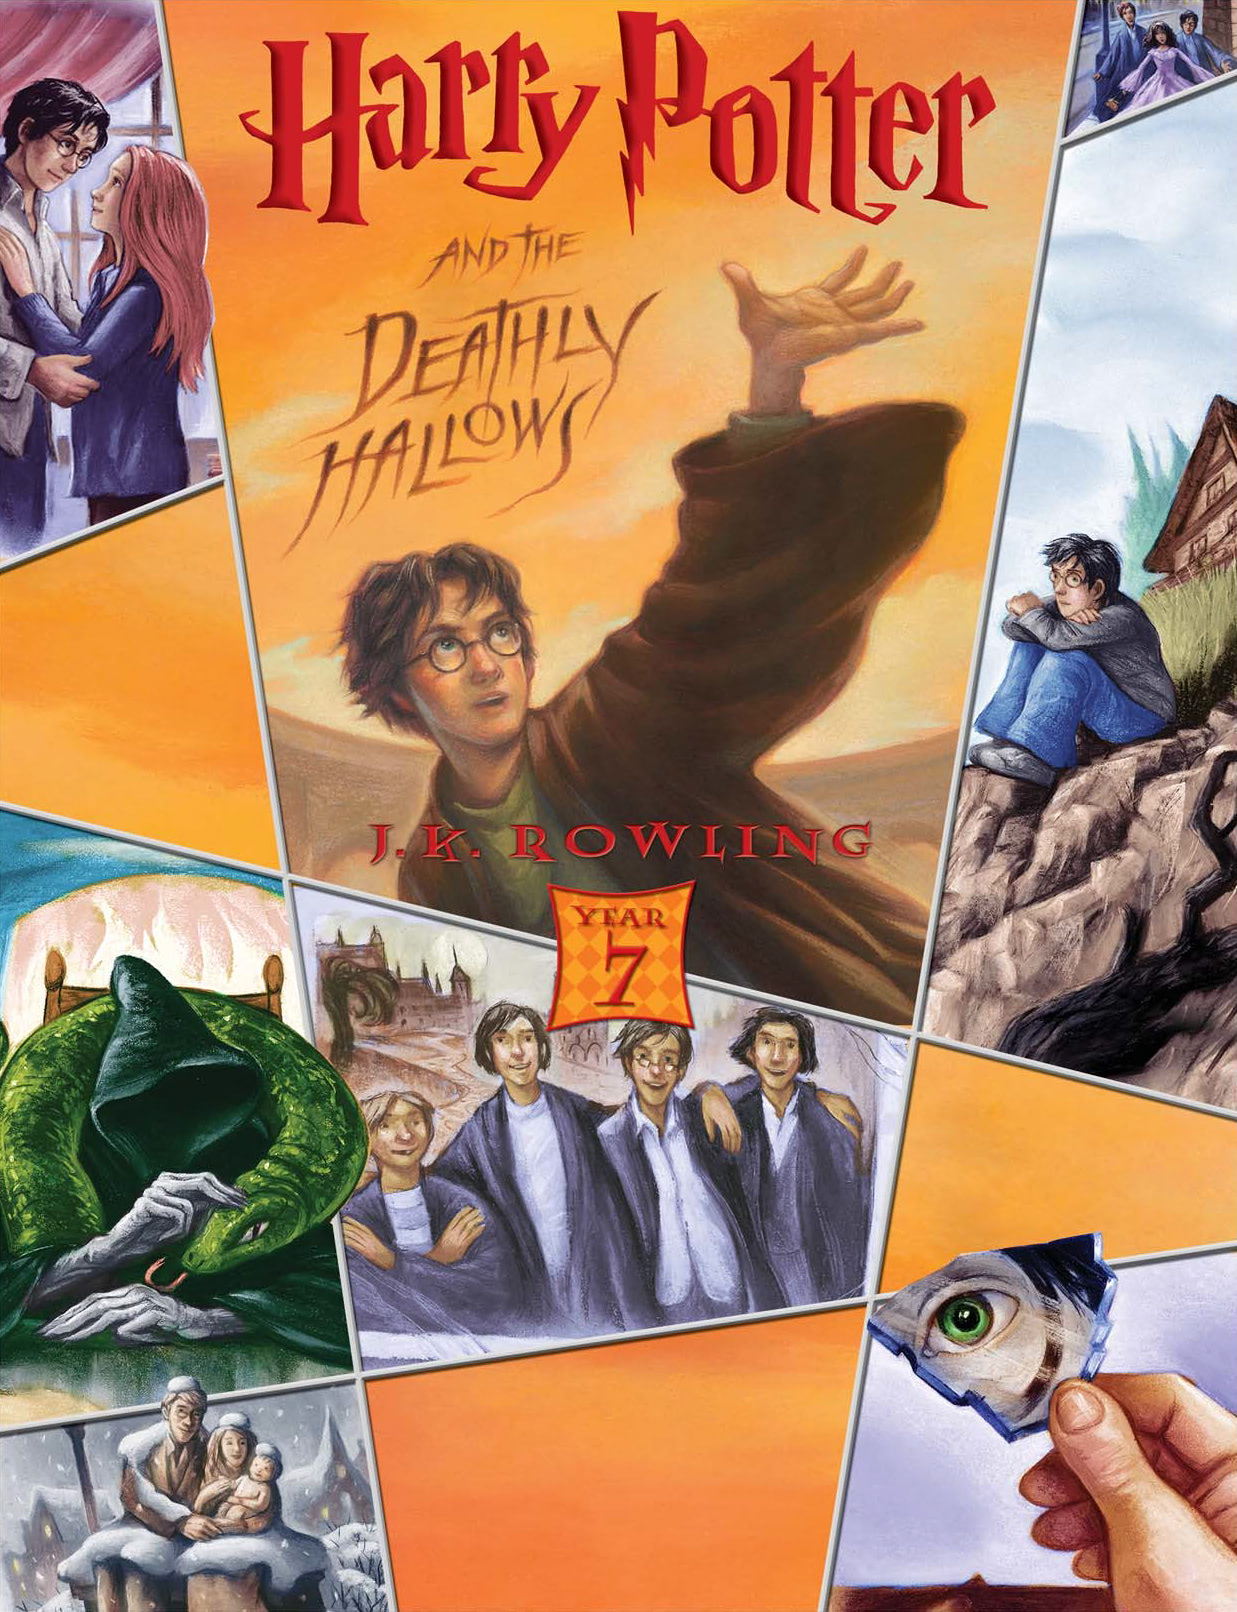 'Deathly Hallows' (Year 7) Scholastic promotional poster